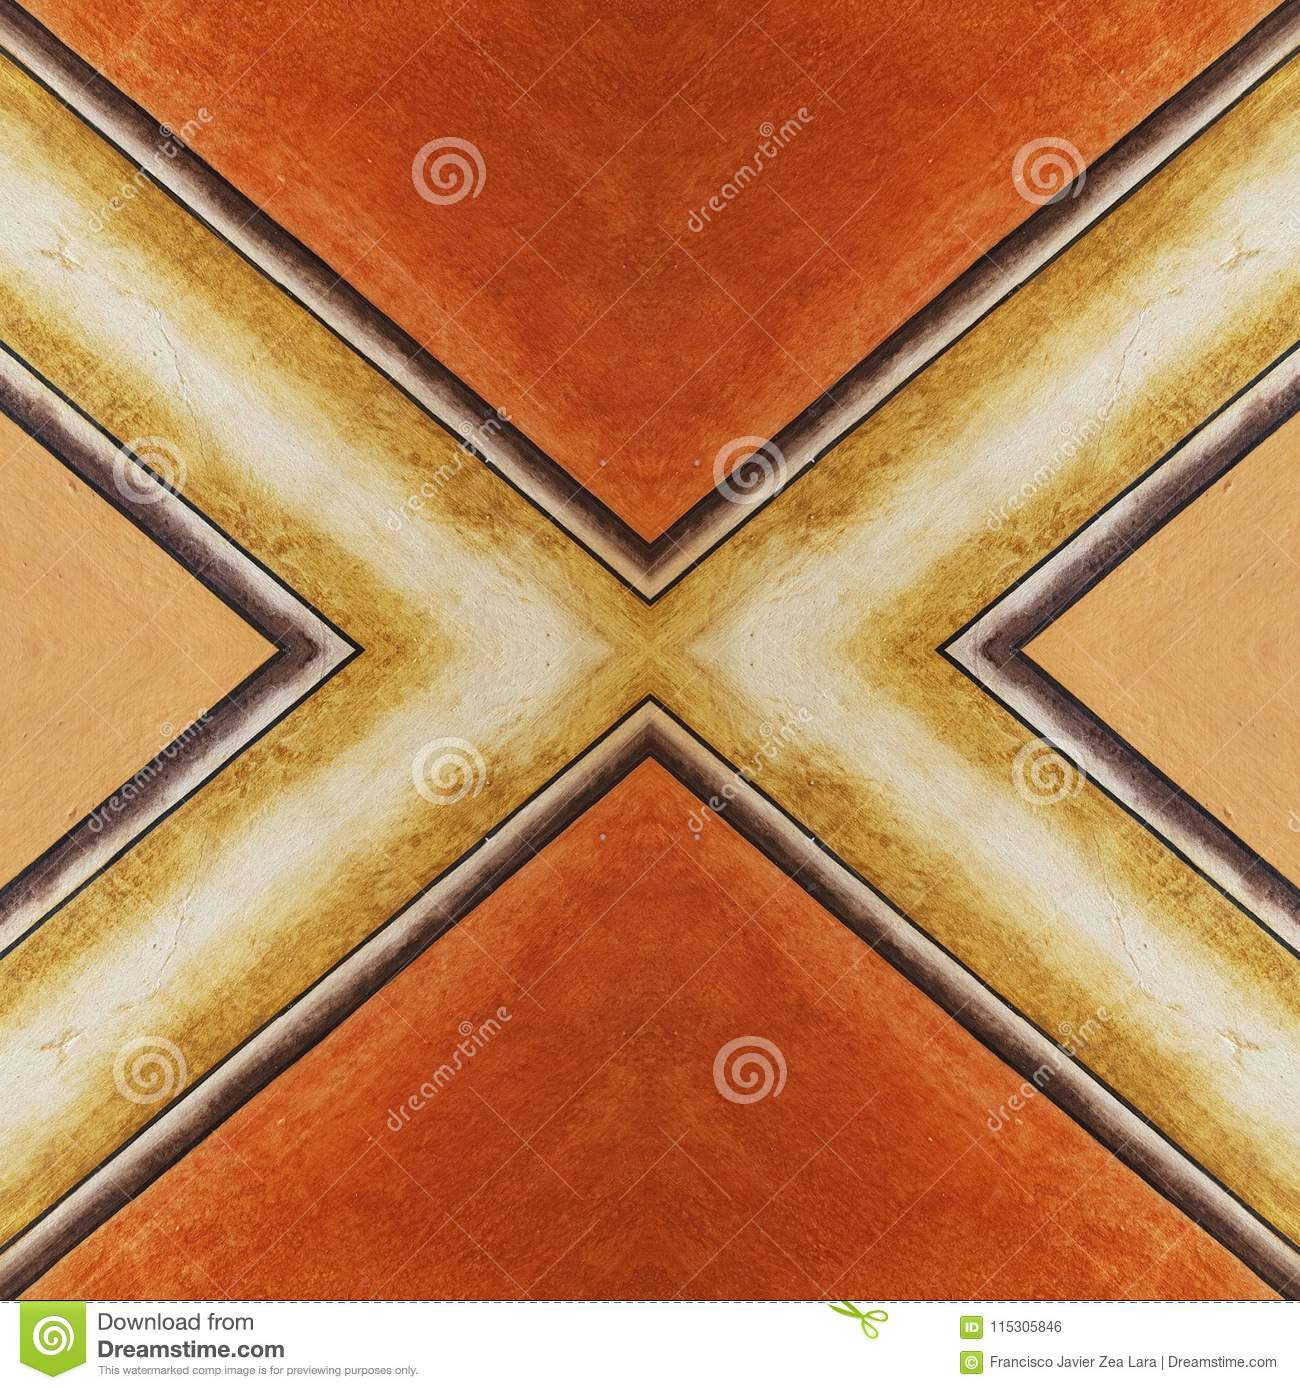 Abstract Design For Walls And Floors With Old-style, In